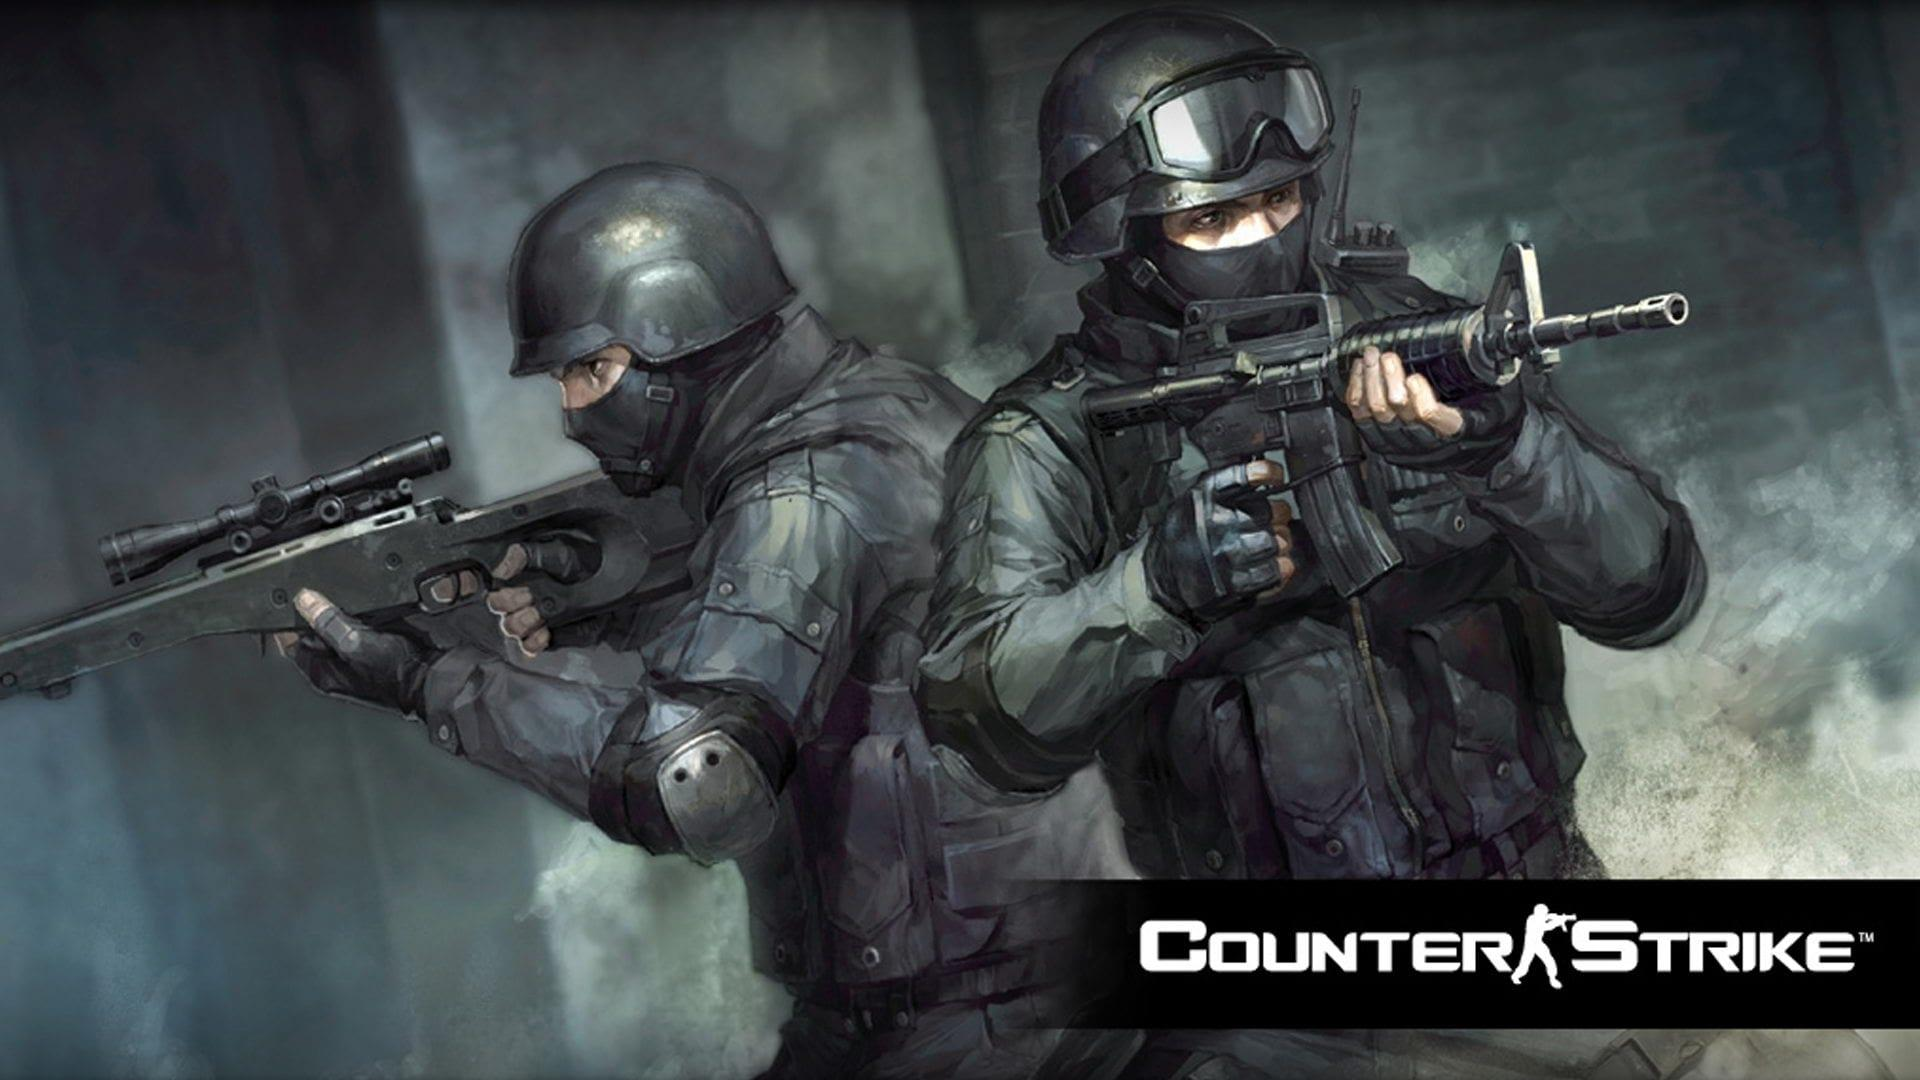 Counter-Strike 1.6 HD Desktop Wallpapers | 7wallpapers.net